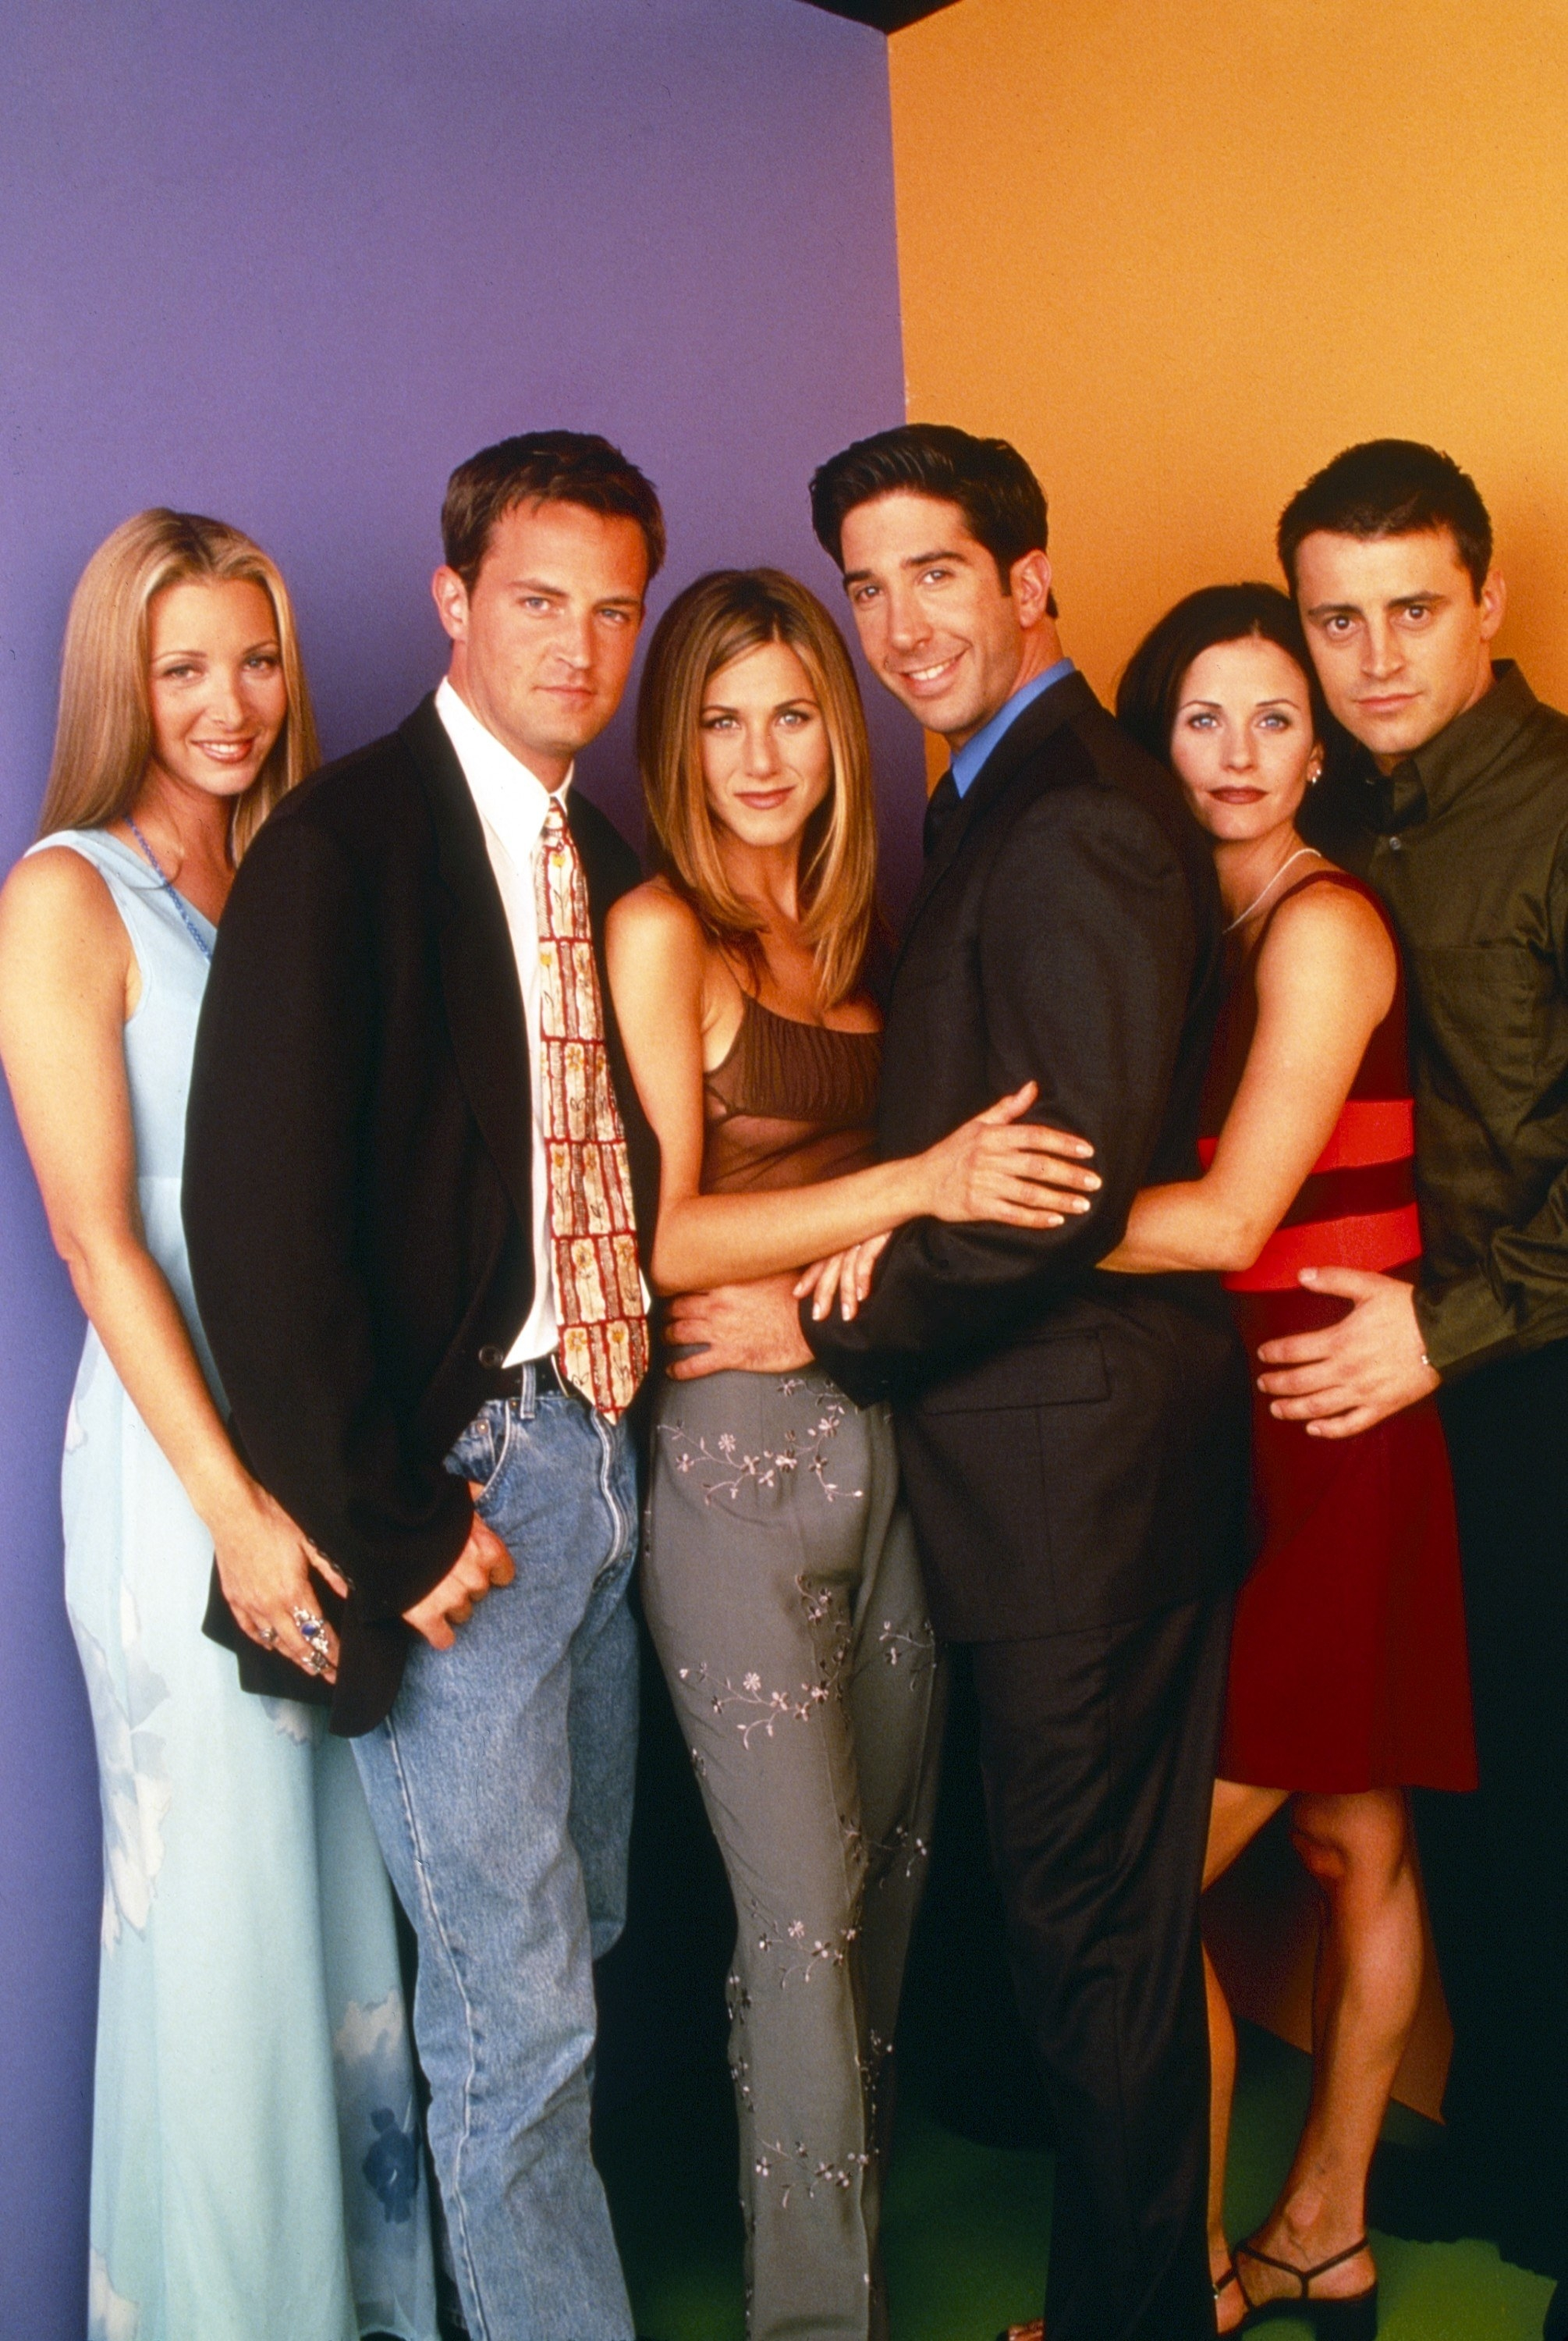 All the Friends in a promotional shot, with Monica and Joey posing together